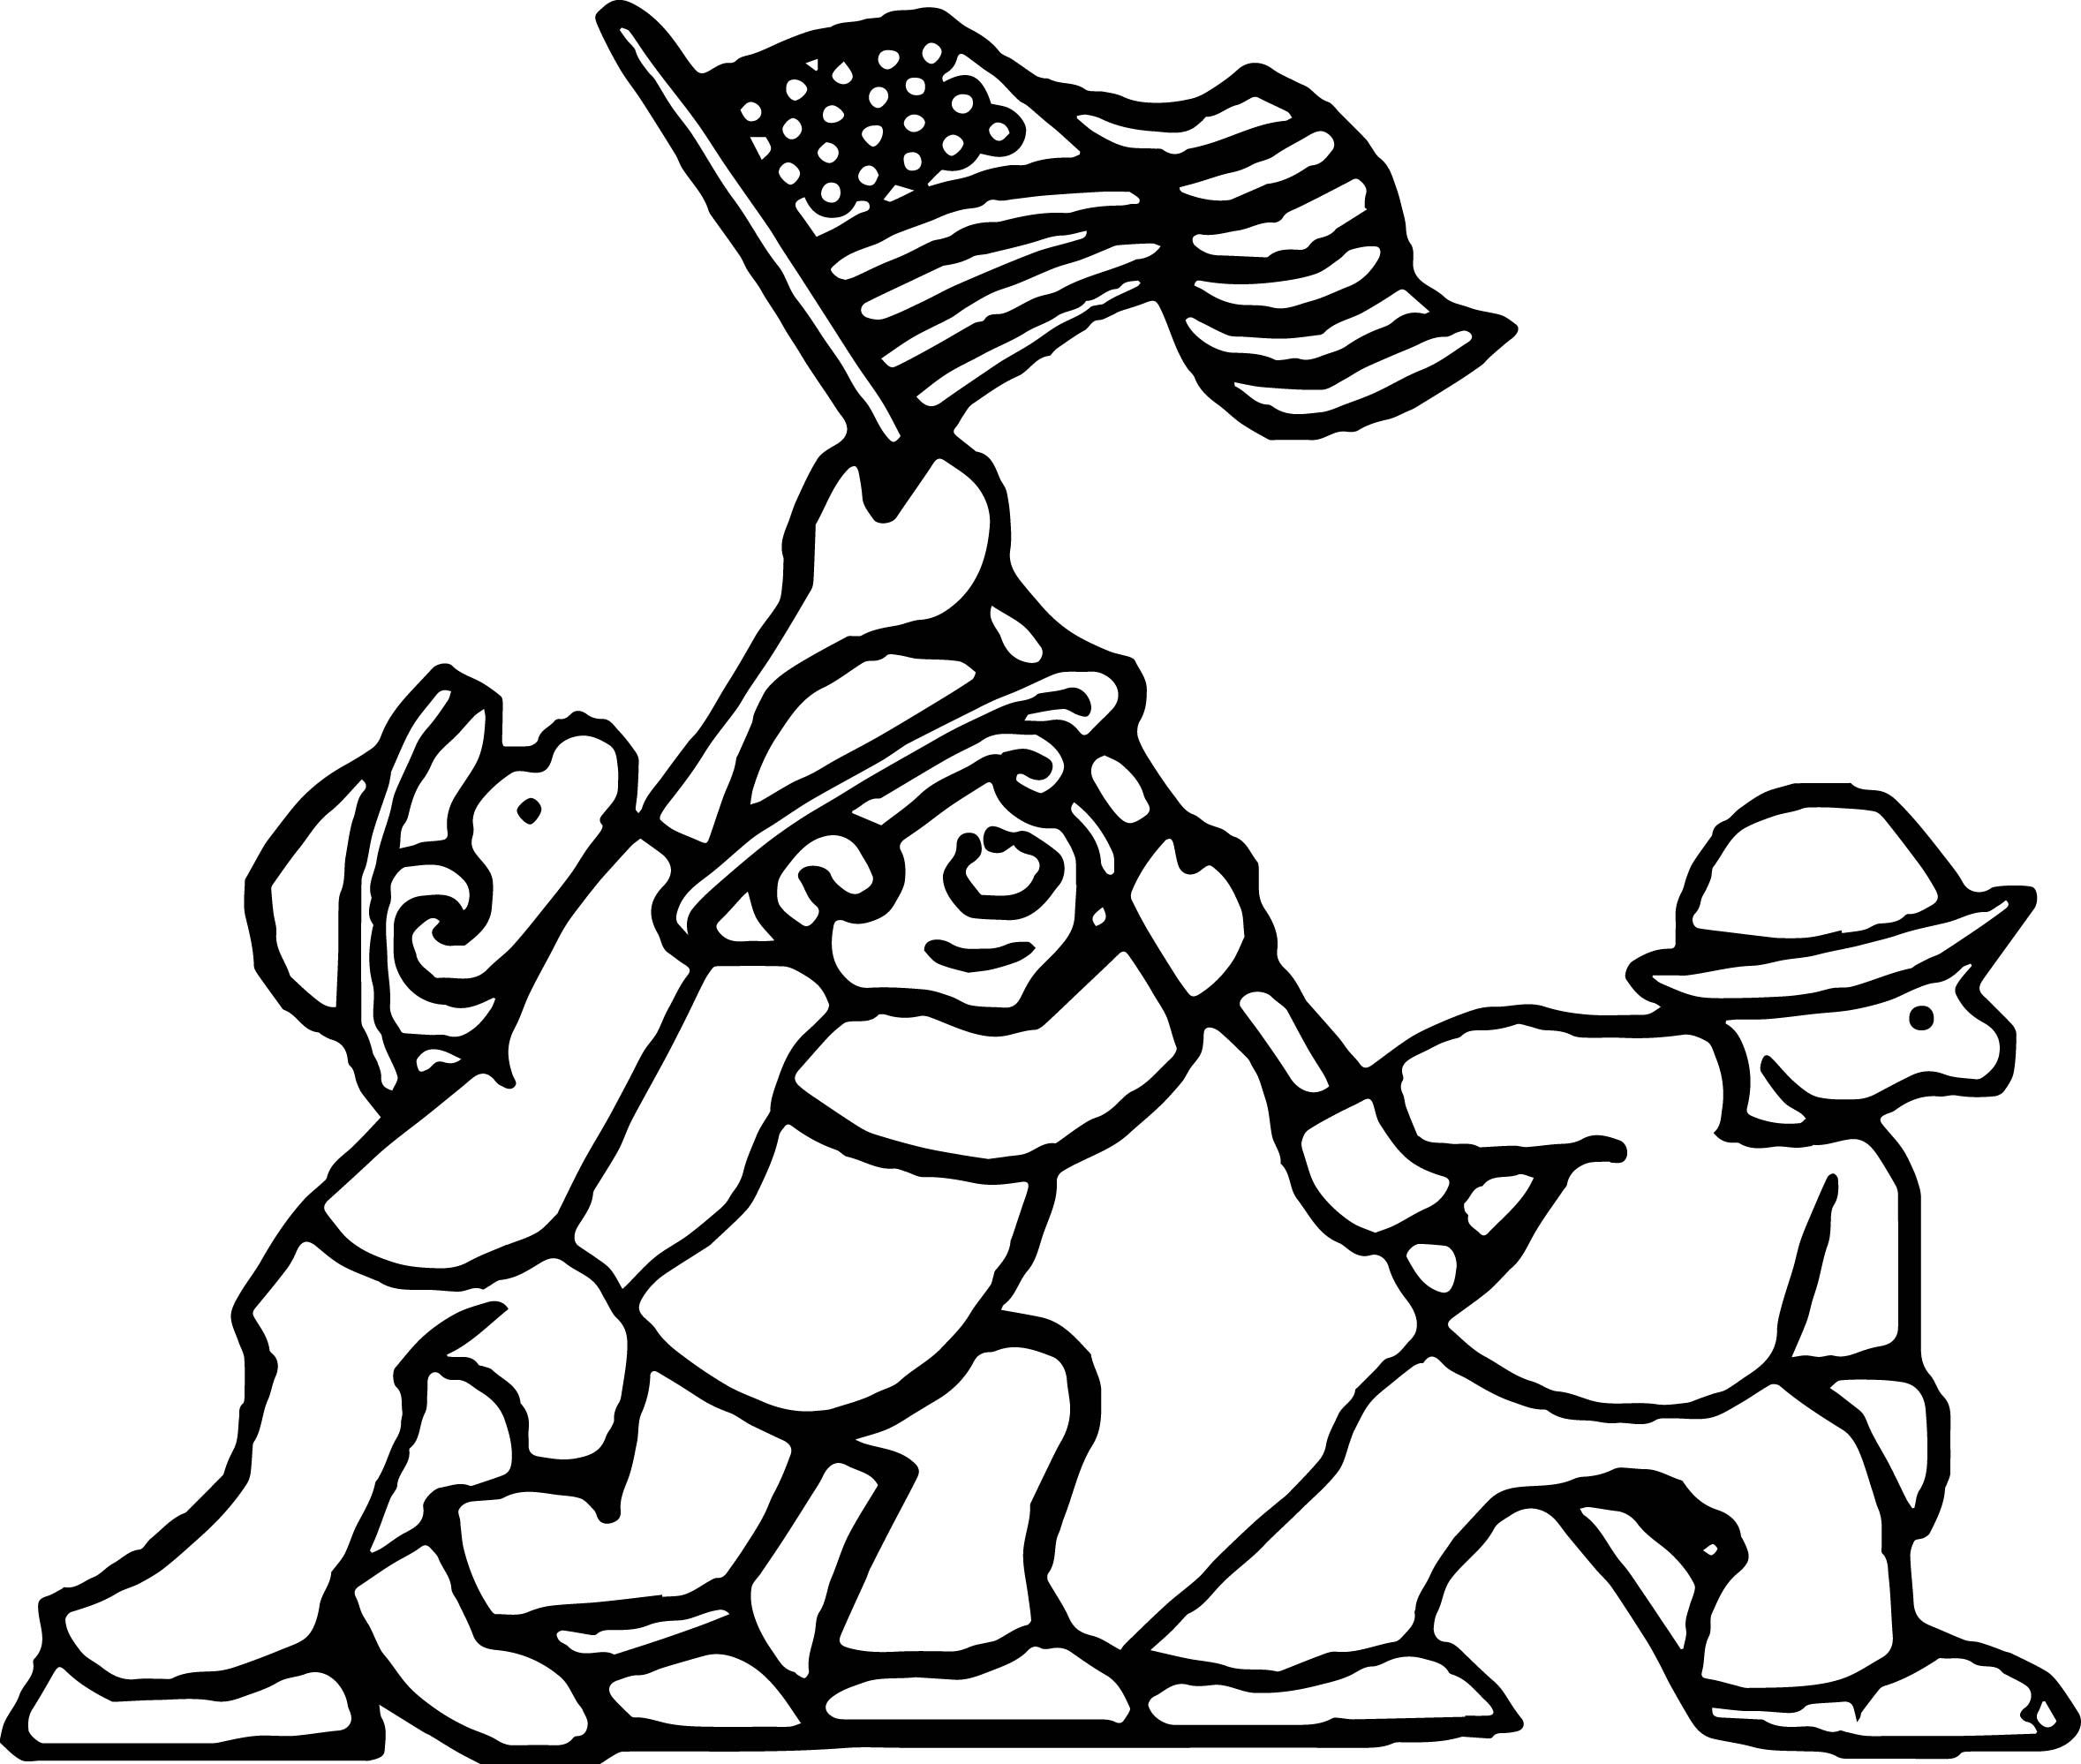 Cool American Revolution American Wars Coloring Page Coloring Pages American War American Revolution